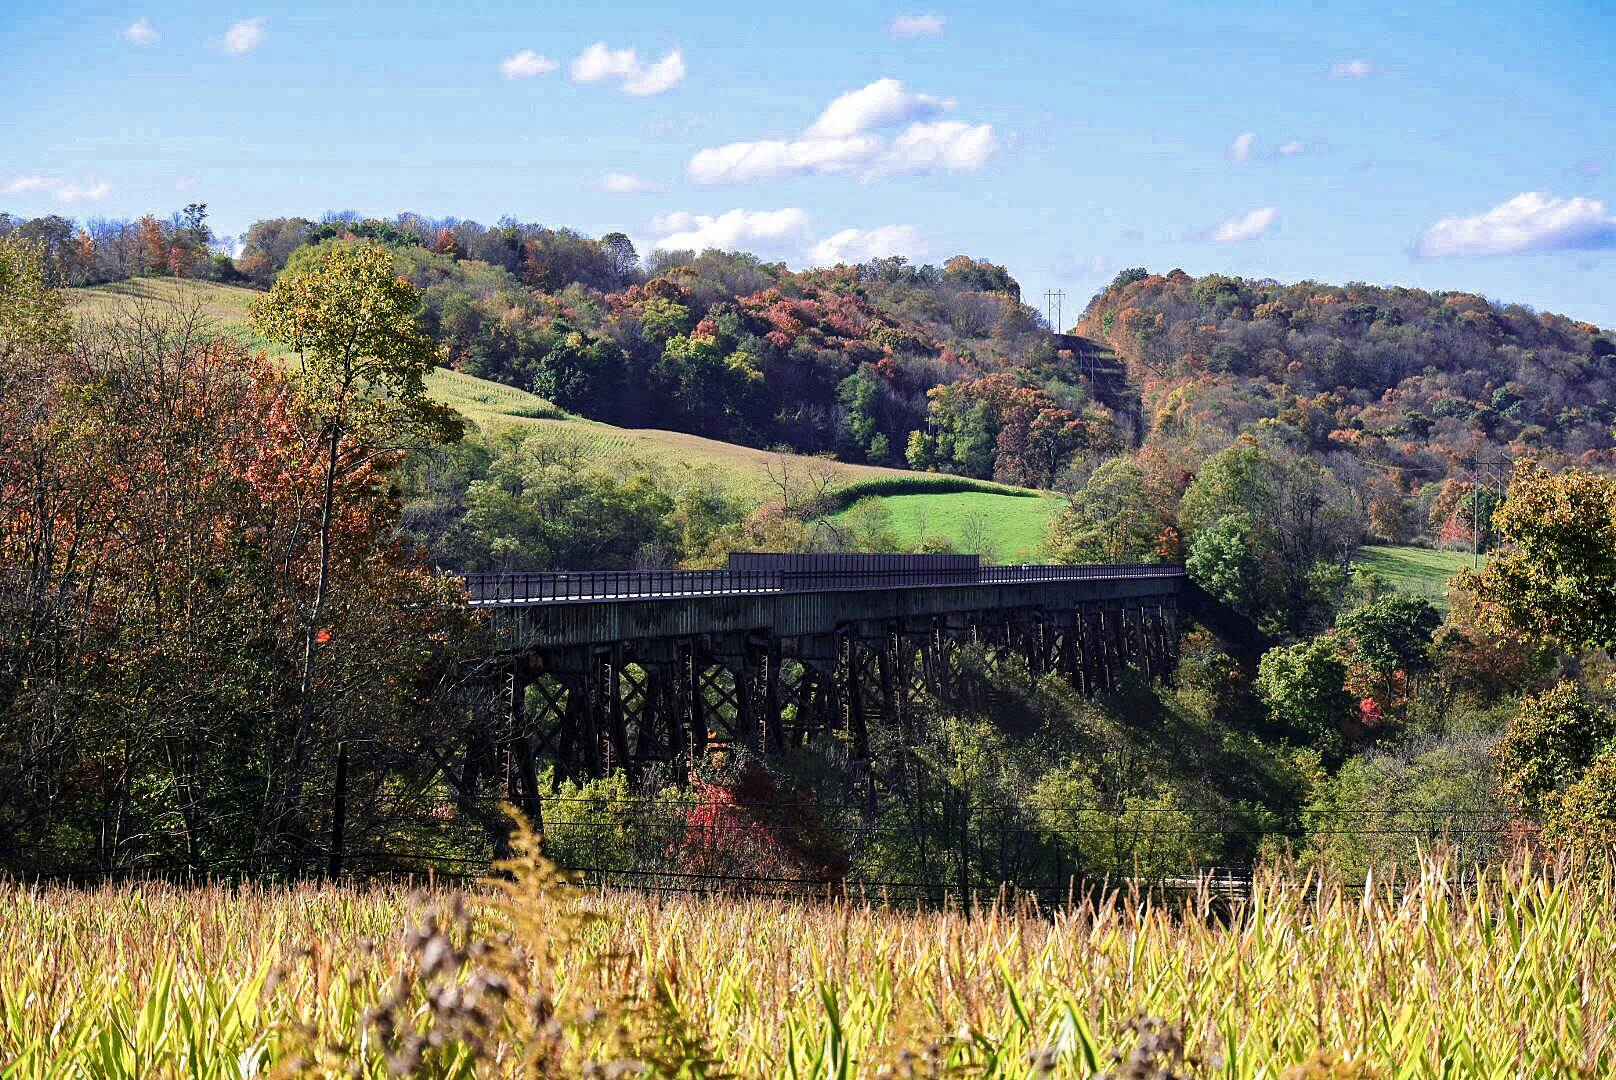 Great Allegheny Passage Great Allegheny Passage Photo by: Hilary Dunning